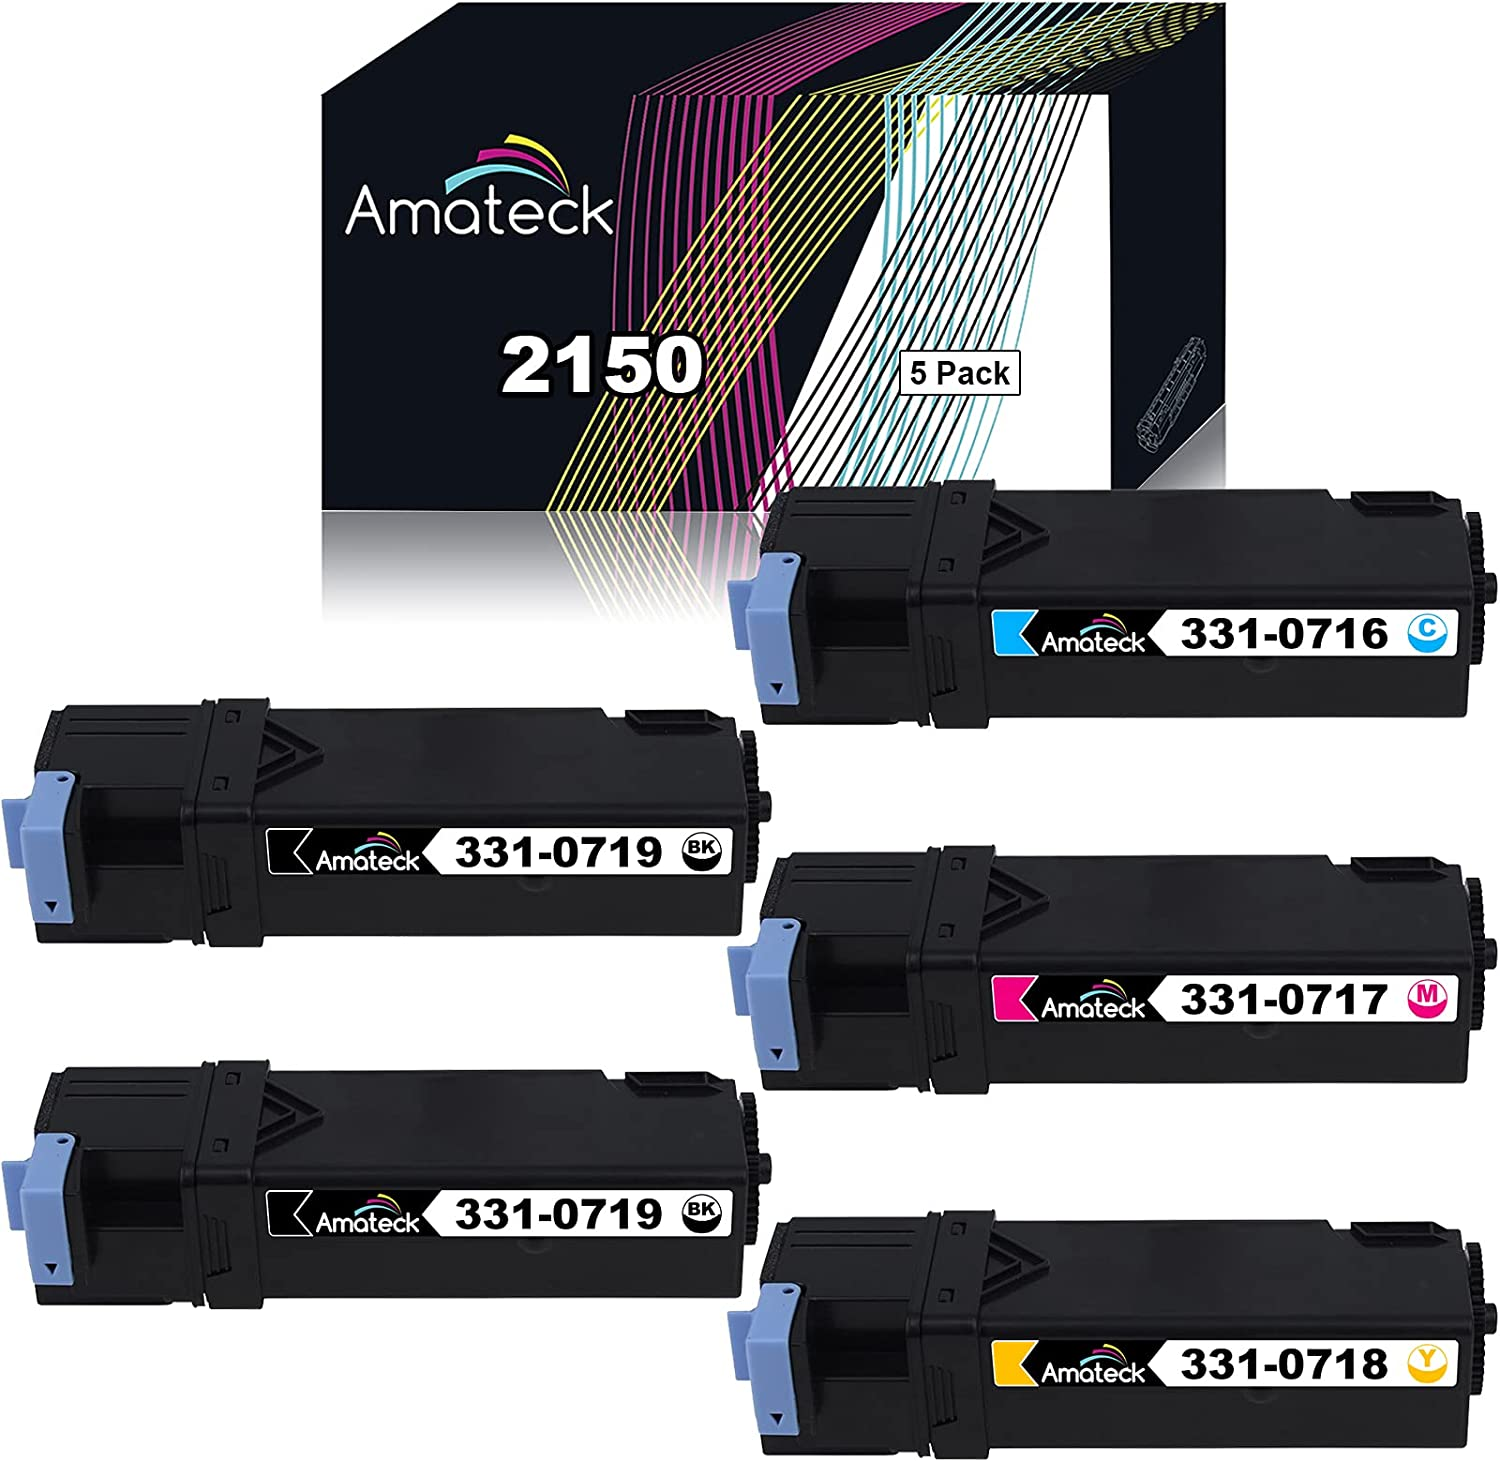 Amateck Compatible Toner Cartridge Replacement for Dell 331 0716 0717 0718 0719 5 Pack for 2150cdn, 2150cn, 2155cdn, 2155cn